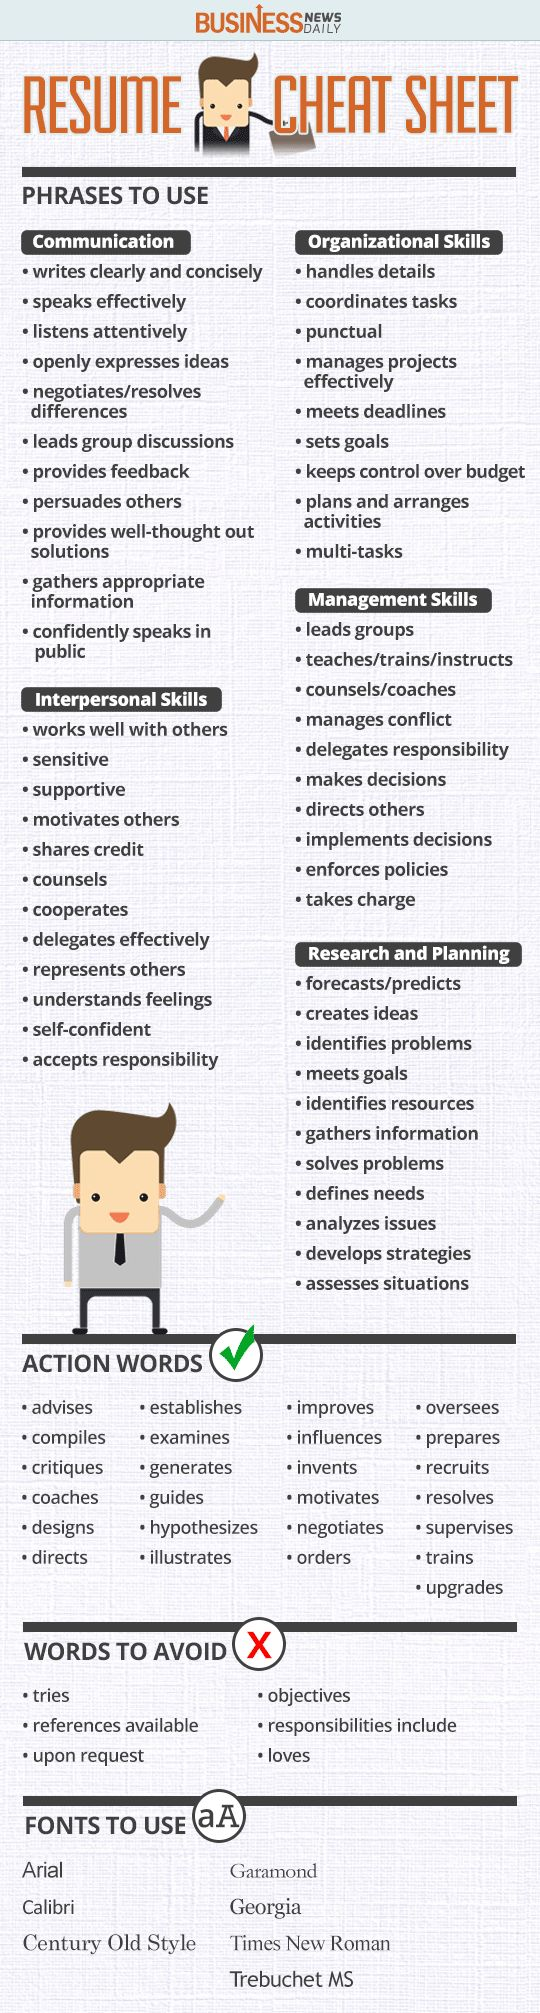 Opposenewapstandardsus  Winsome  Ideas About Resume On Pinterest  Cv Format Resume Cv And  With Extraordinary Resume Cheat Sheet Infographic Andrews Almost Done With A Complete Unit On Employment Which With Divine Clinical Research Resume Also Scholarship Resume Examples In Addition Where To Post Resume Online And Sample Resume For Graduate School As Well As Online Resume Builder Reviews Additionally Combination Resumes From Pinterestcom With Opposenewapstandardsus  Extraordinary  Ideas About Resume On Pinterest  Cv Format Resume Cv And  With Divine Resume Cheat Sheet Infographic Andrews Almost Done With A Complete Unit On Employment Which And Winsome Clinical Research Resume Also Scholarship Resume Examples In Addition Where To Post Resume Online From Pinterestcom